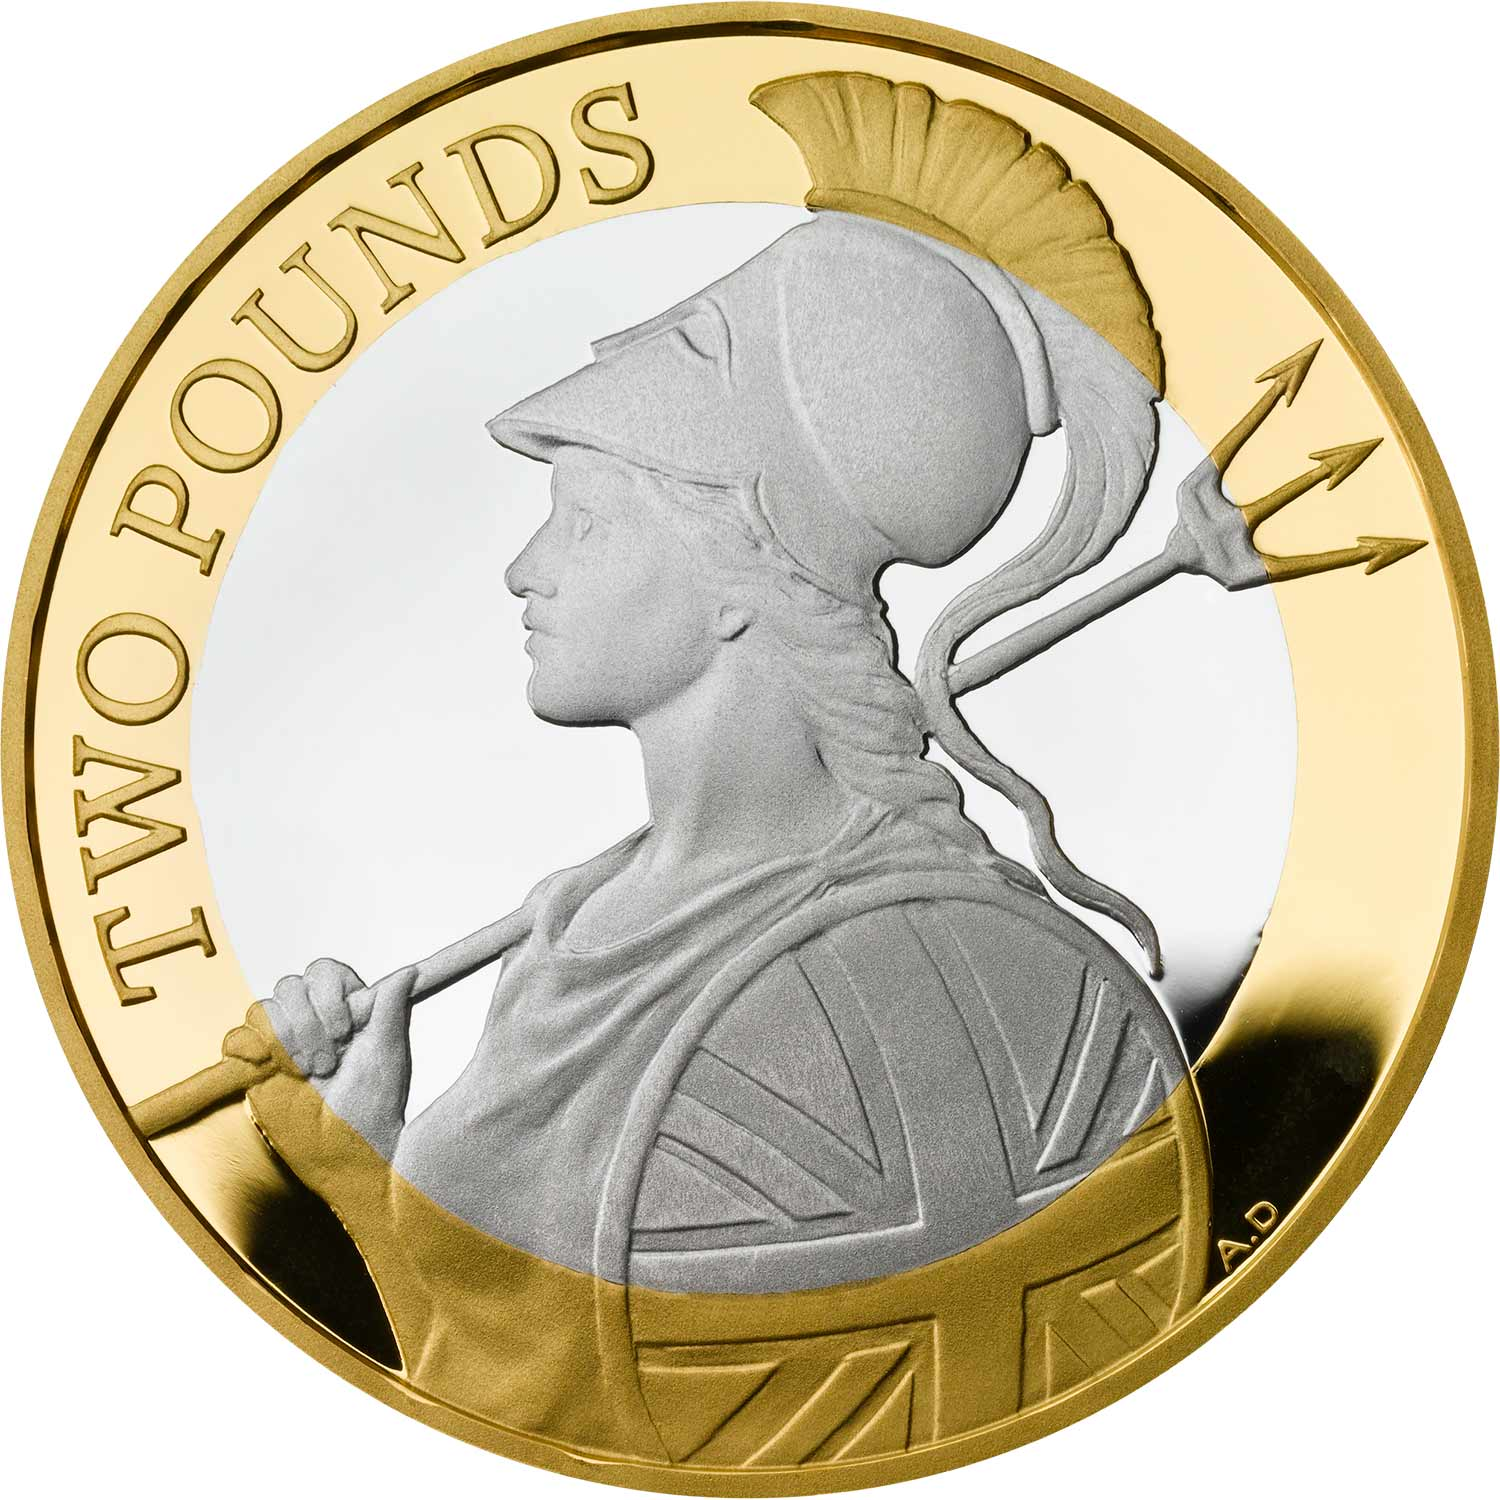 Two Pounds 2019 Britannia (mint sets only): Photo £2 Britannia 2019 Silver Proof Coin